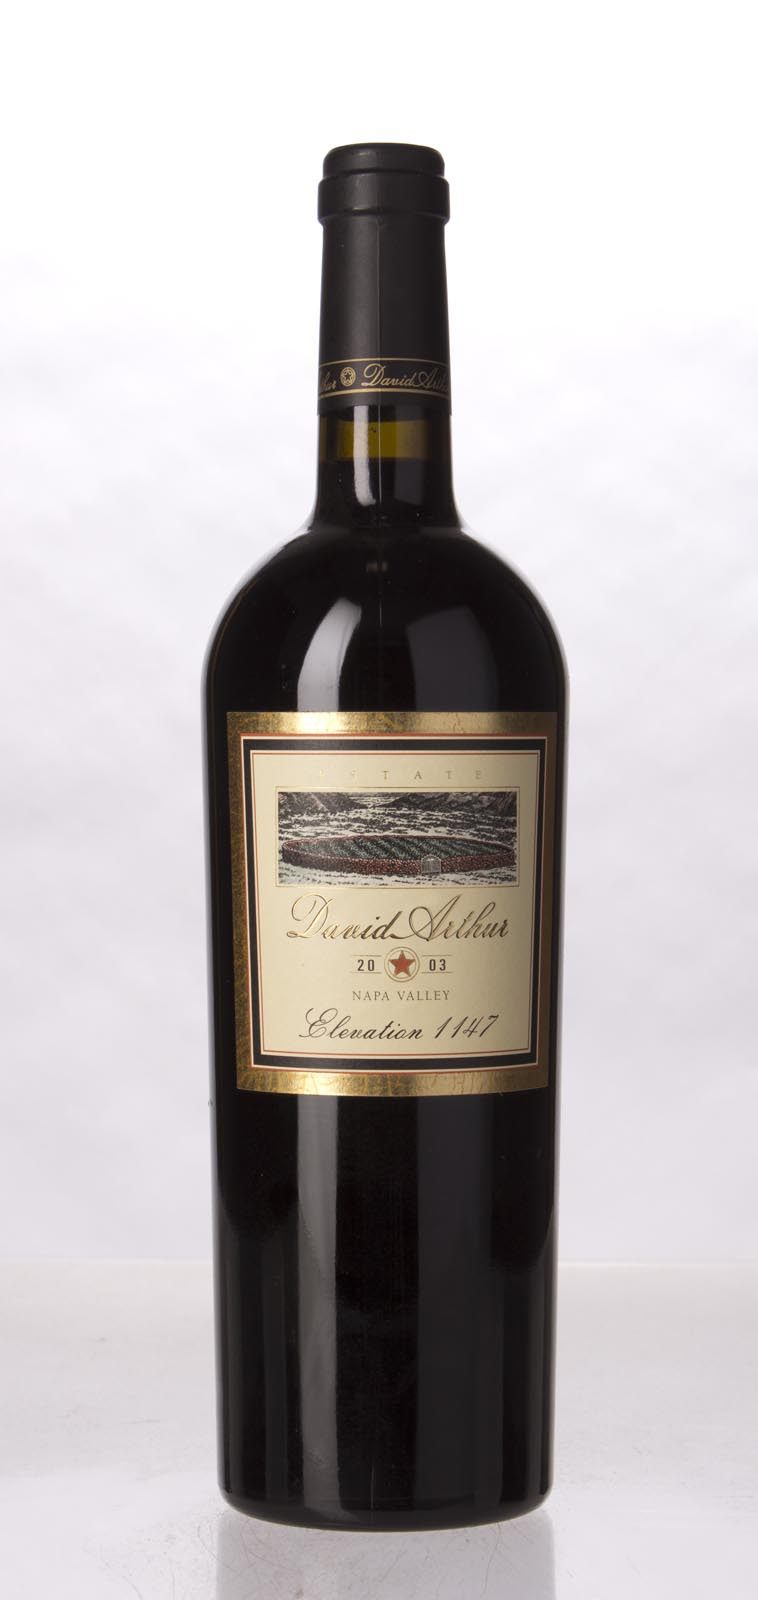 David Arthur Cabernet Sauvignon Elevation 1147 2003, 750mL () from The BPW - Merchants of rare and fine wines.